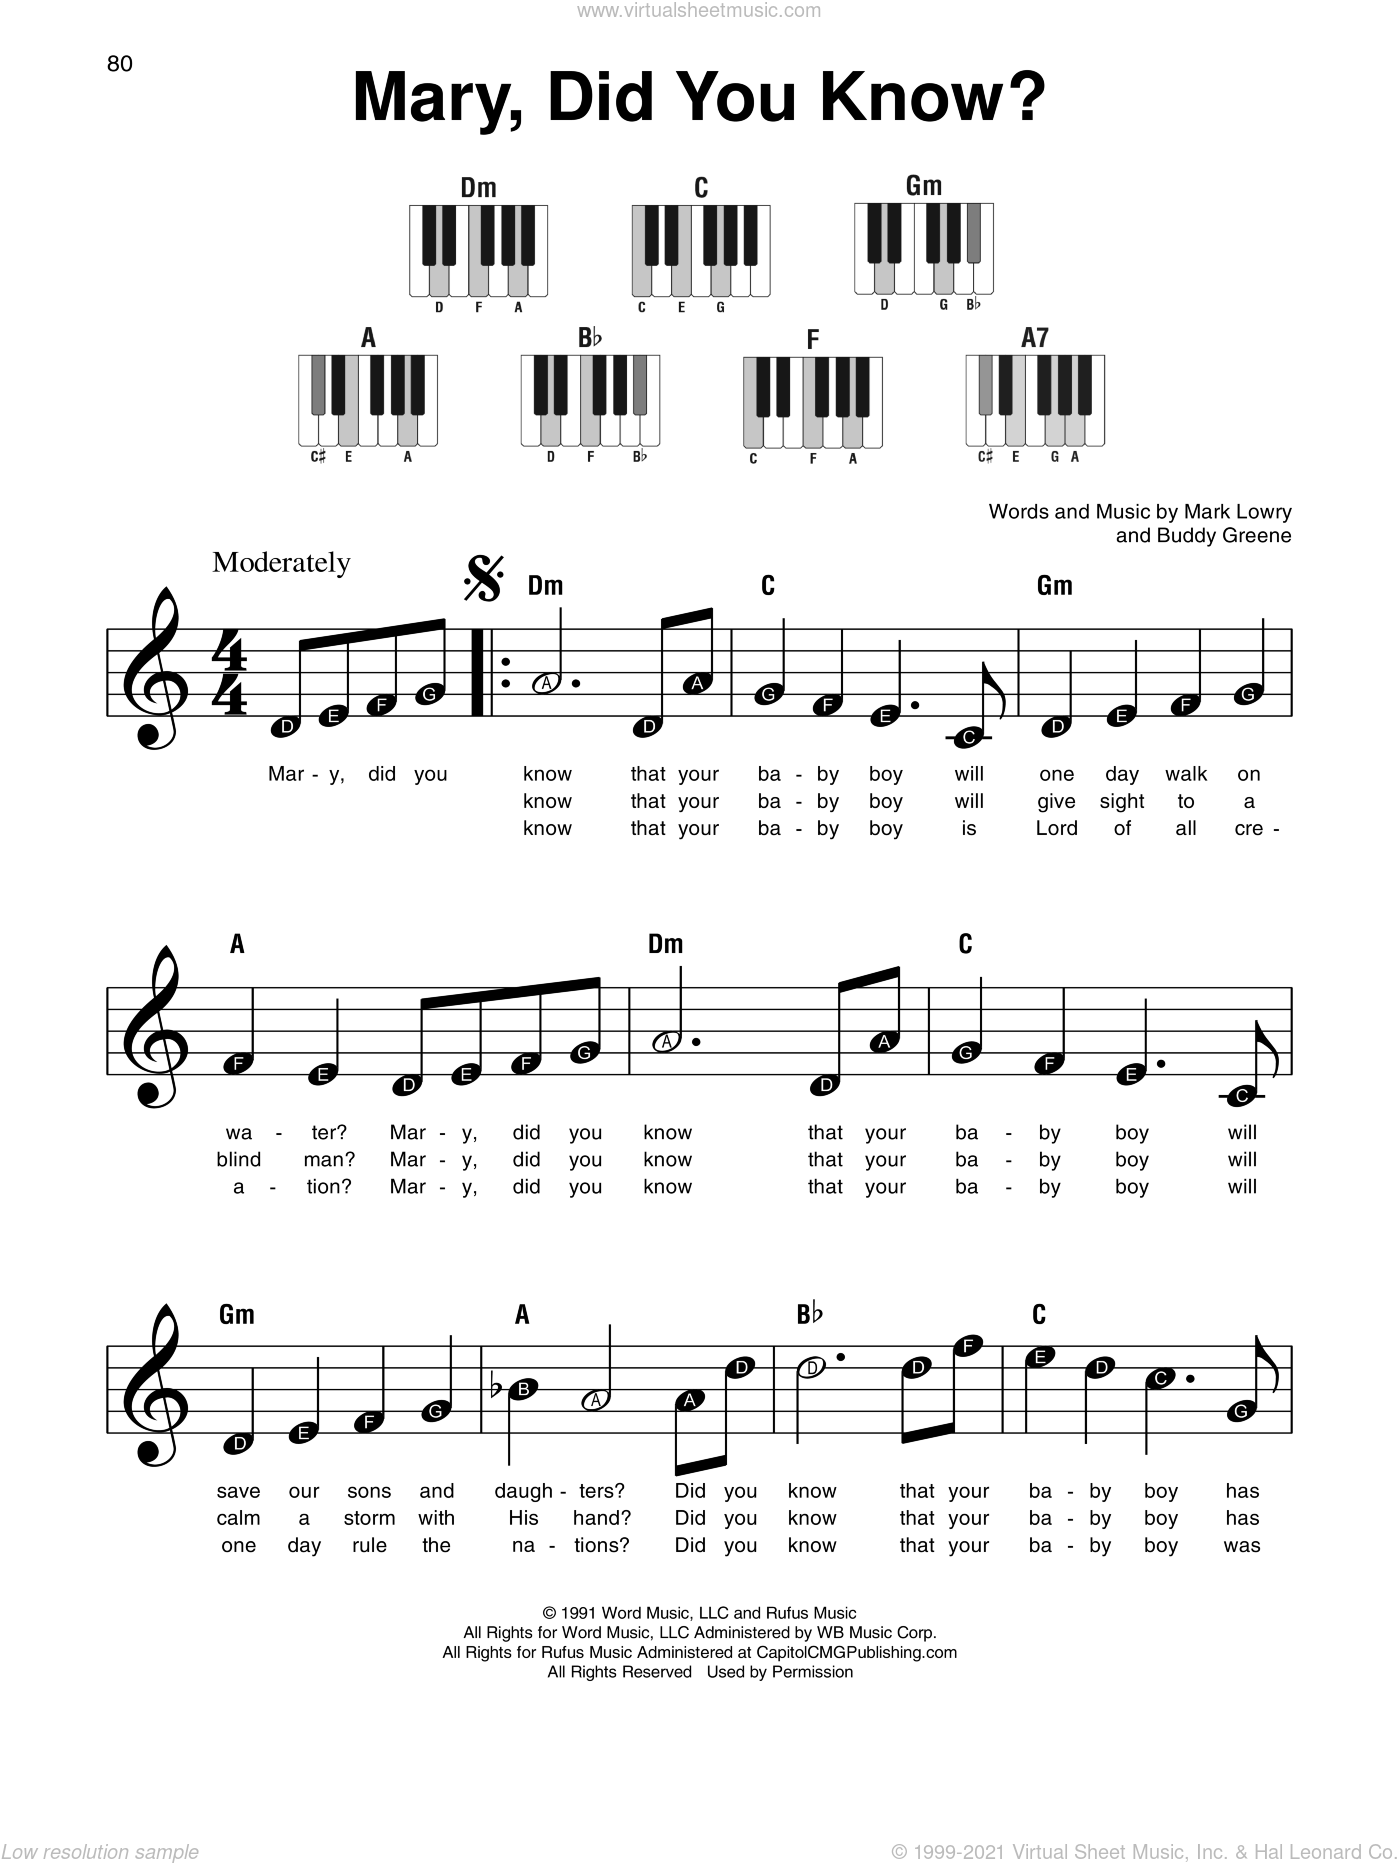 Mary, Did You Know? sheet music for piano solo by Mark Lowry, Kathy Mattea and Buddy Greene, beginner skill level